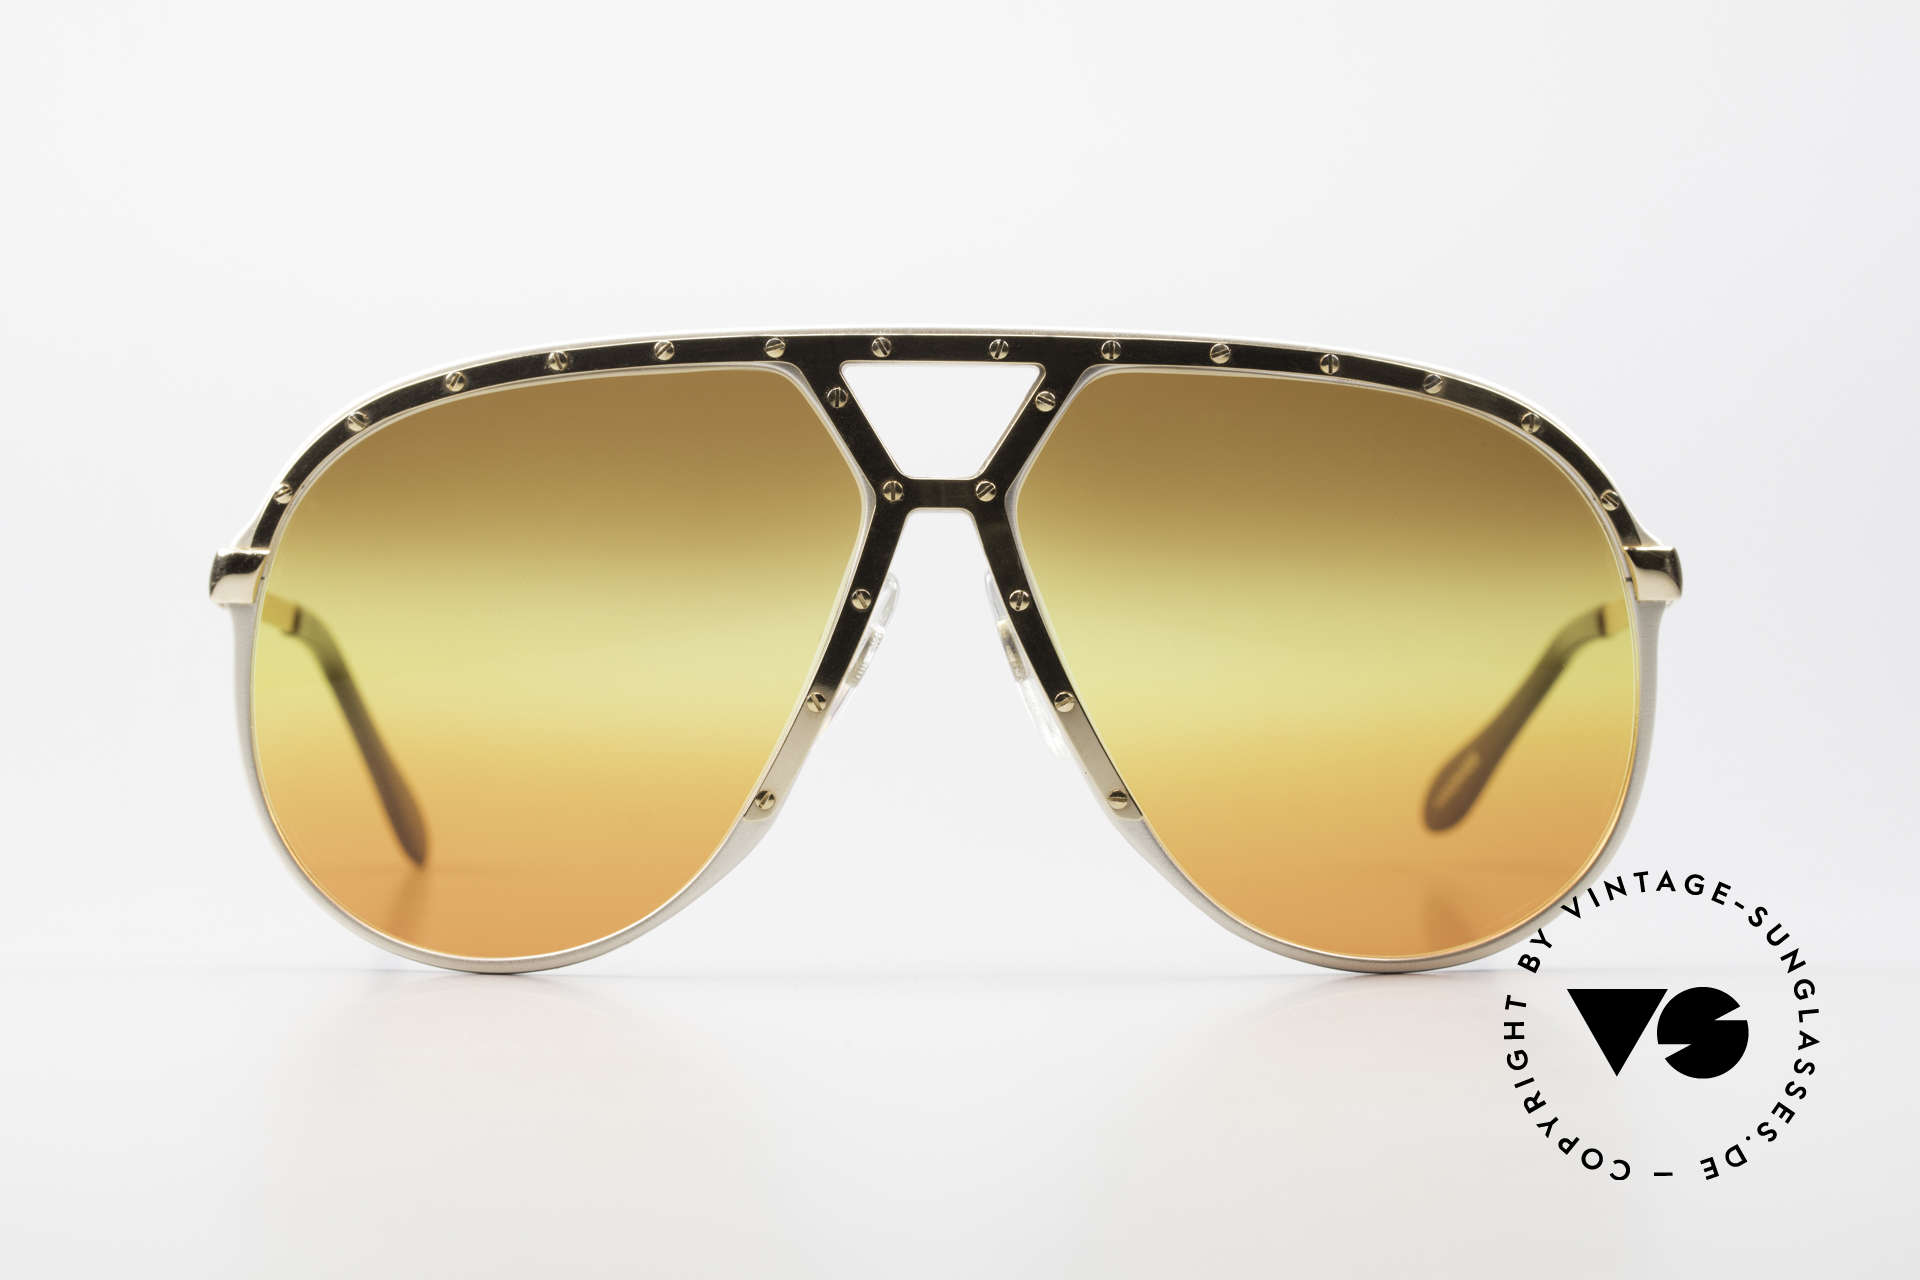 Alpina M1 80's Sunglasses West Germany, Stevie Wonder made the M1 model world famous, Made for Men